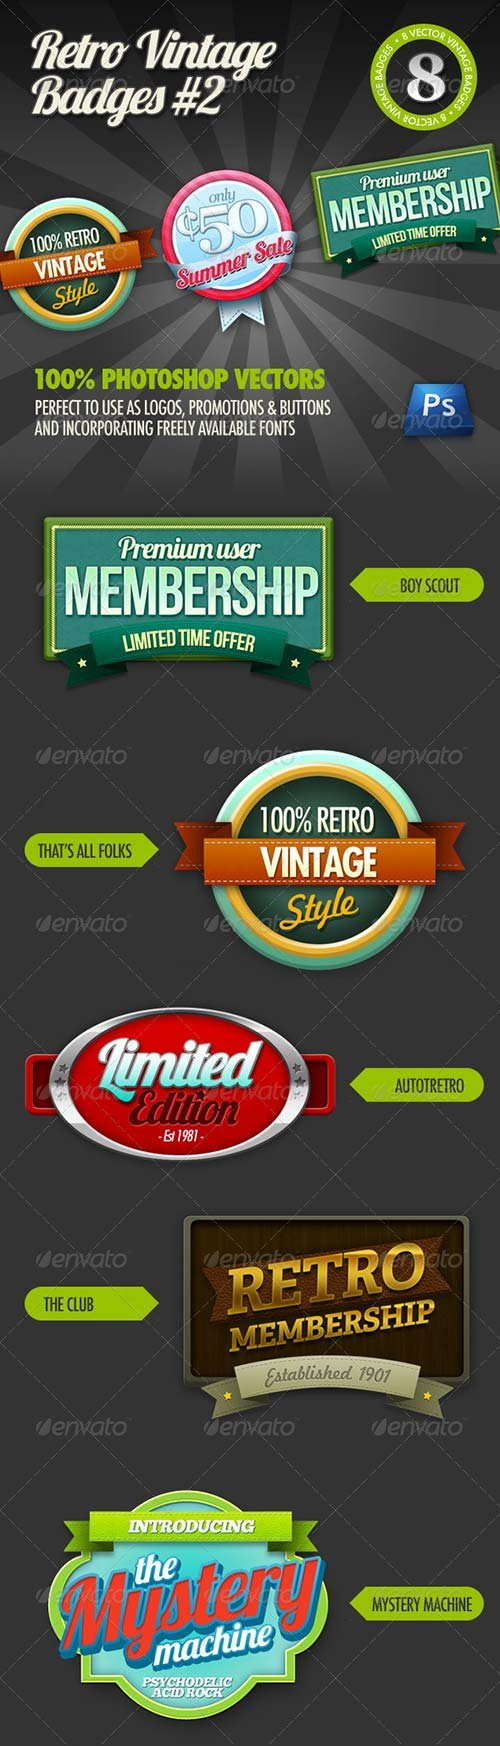 GraphicRiver 8 Retro Vintage badges #2